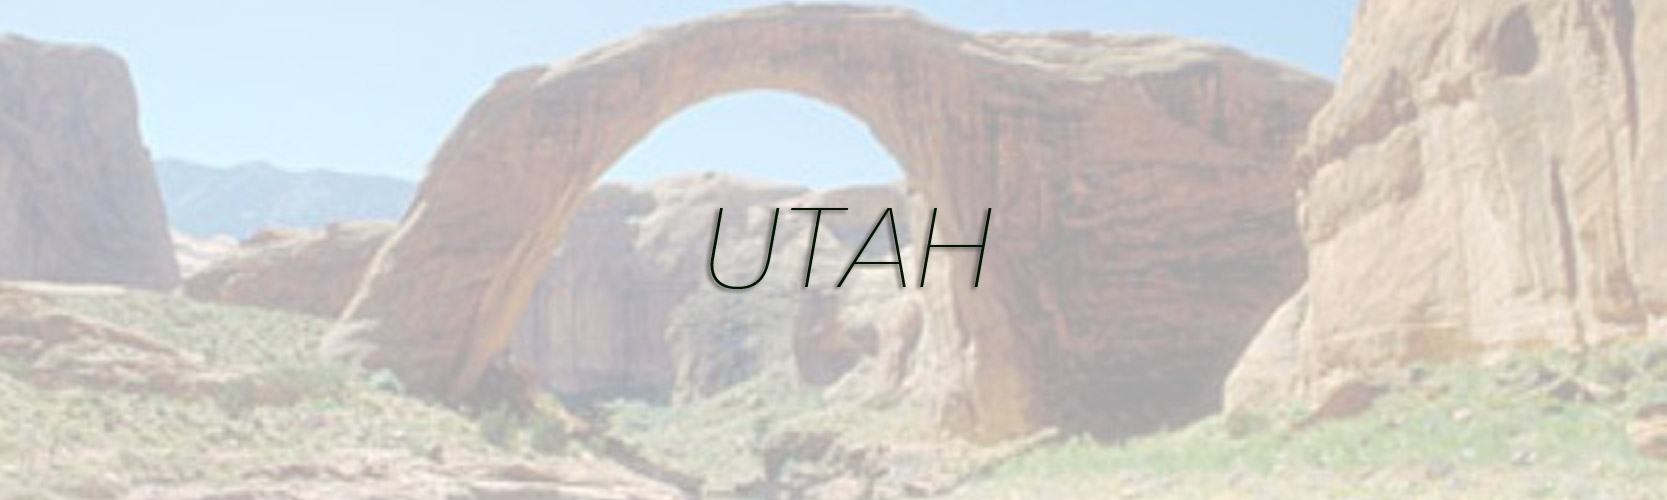 Shipping Futons, Sofa Beds, and Other Futon Shop products to Utah